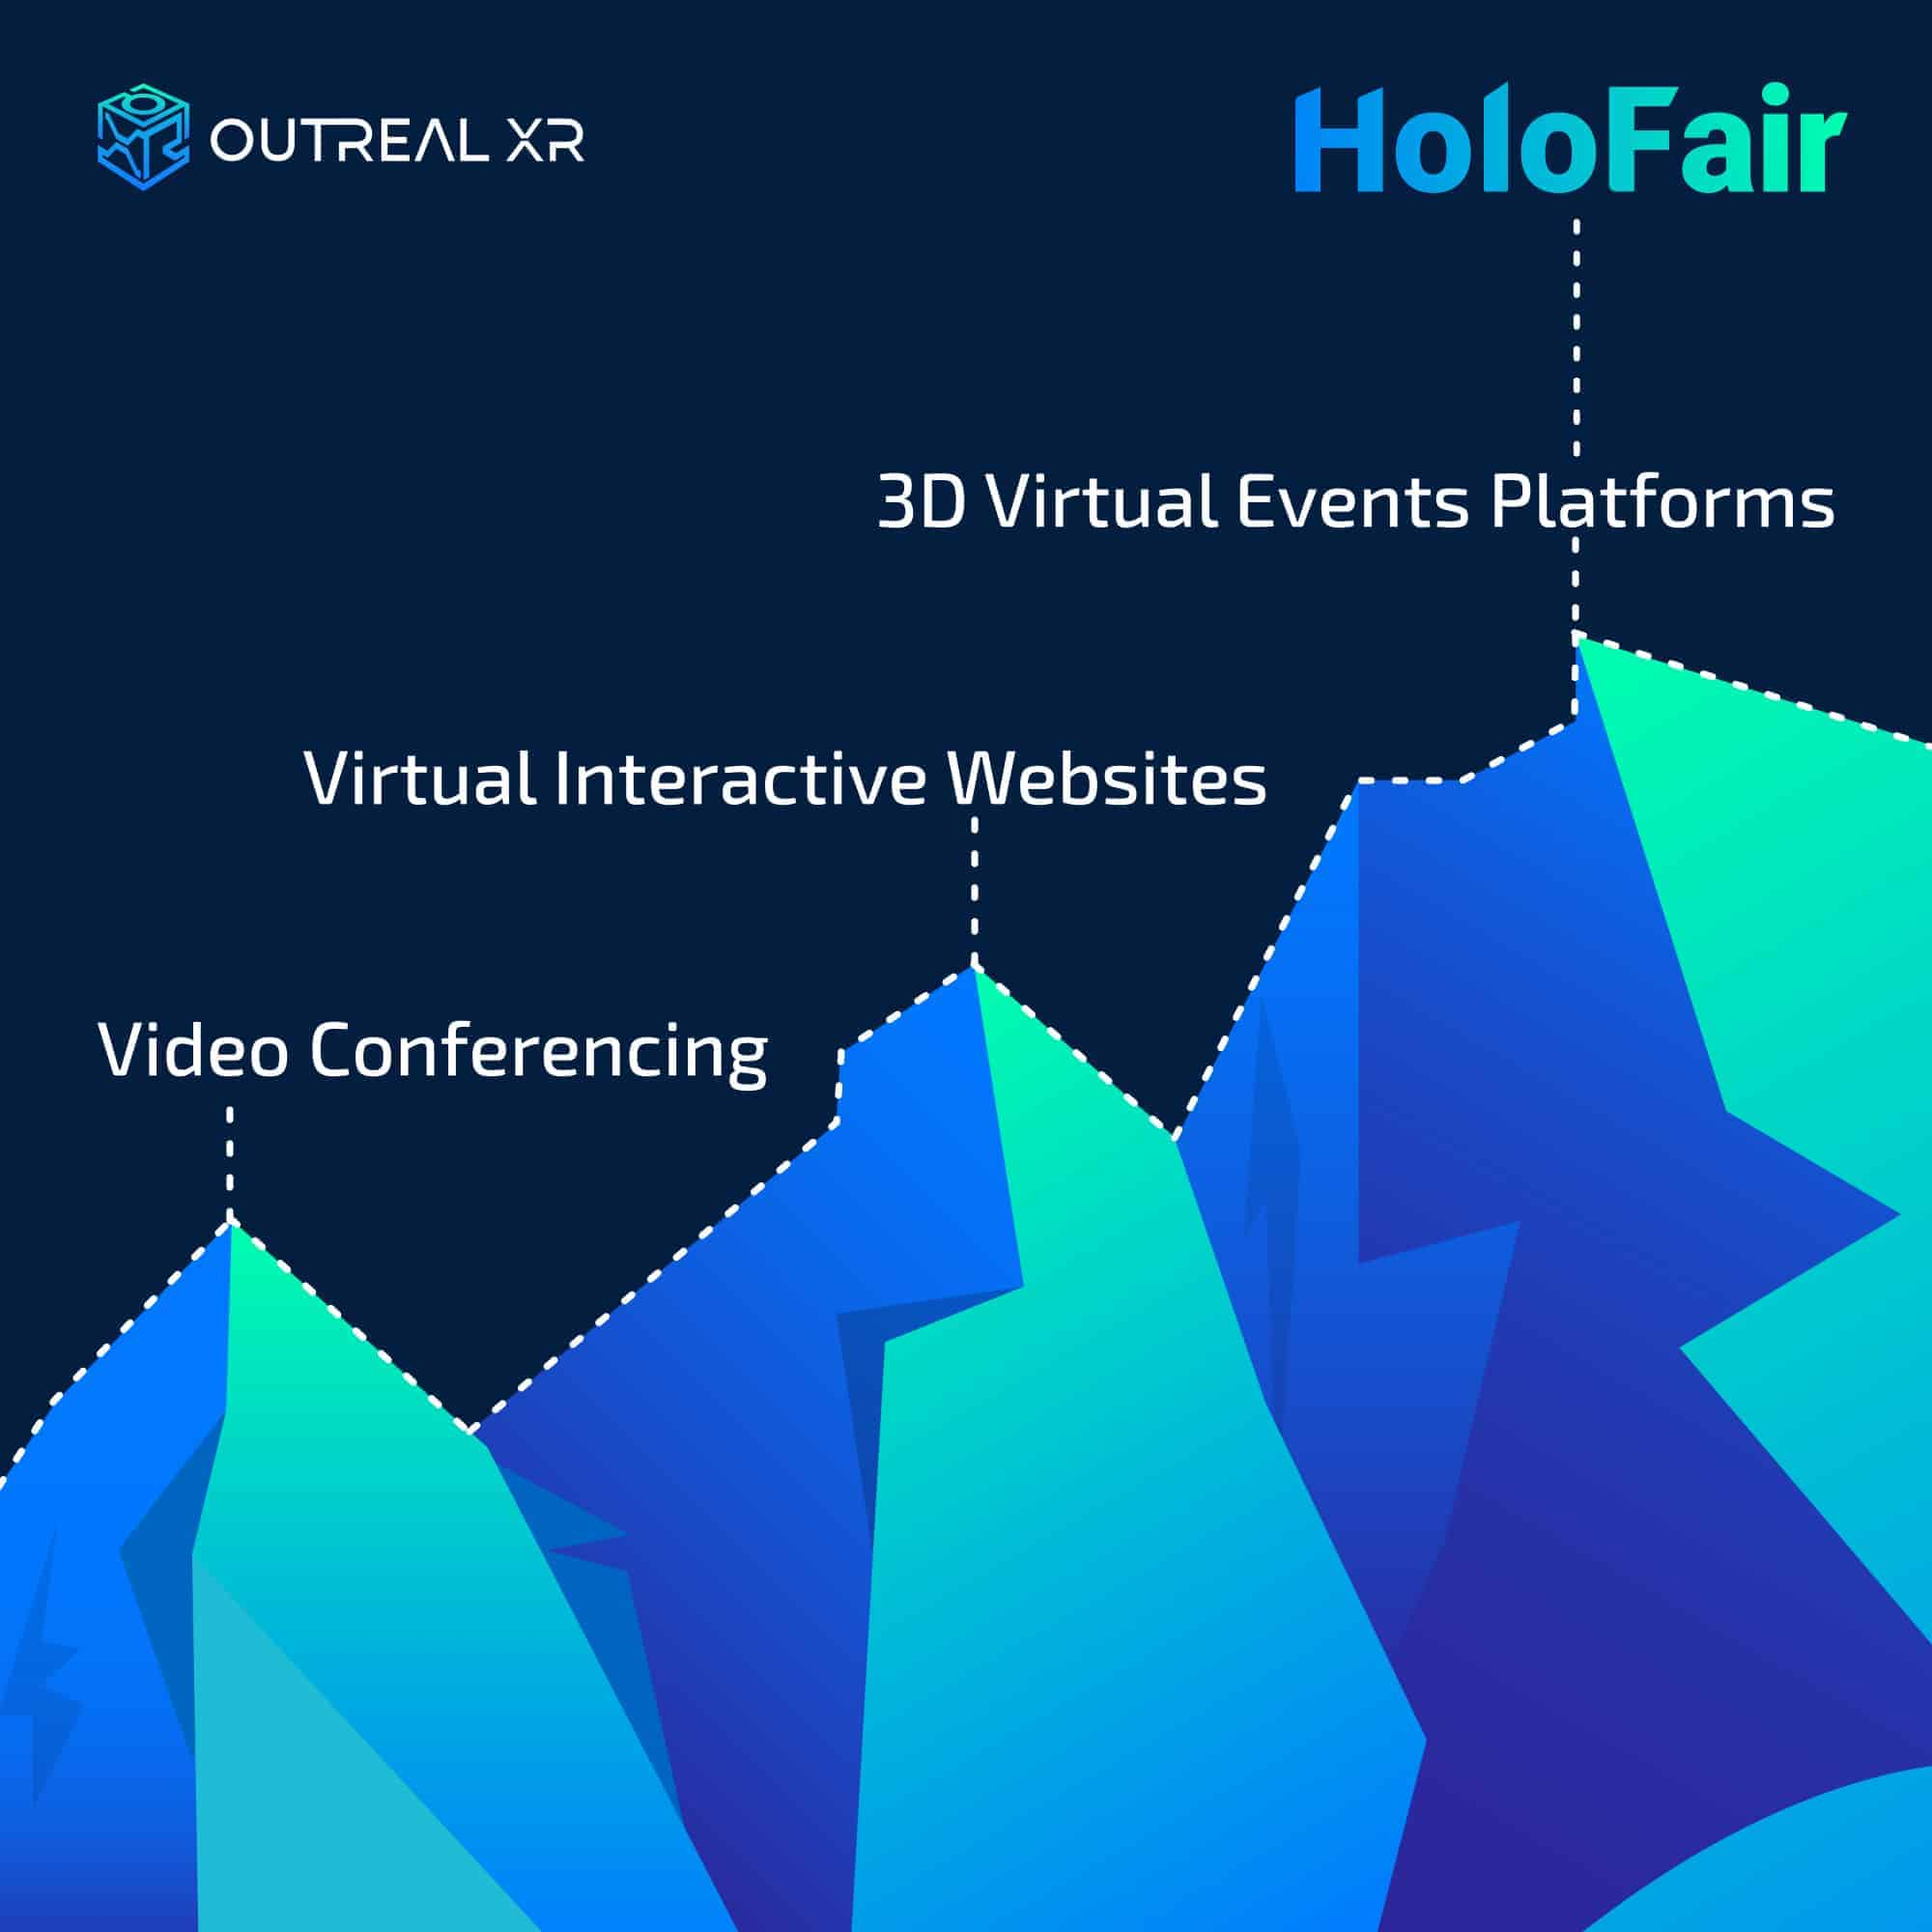 Different types of virtual events platforms and features